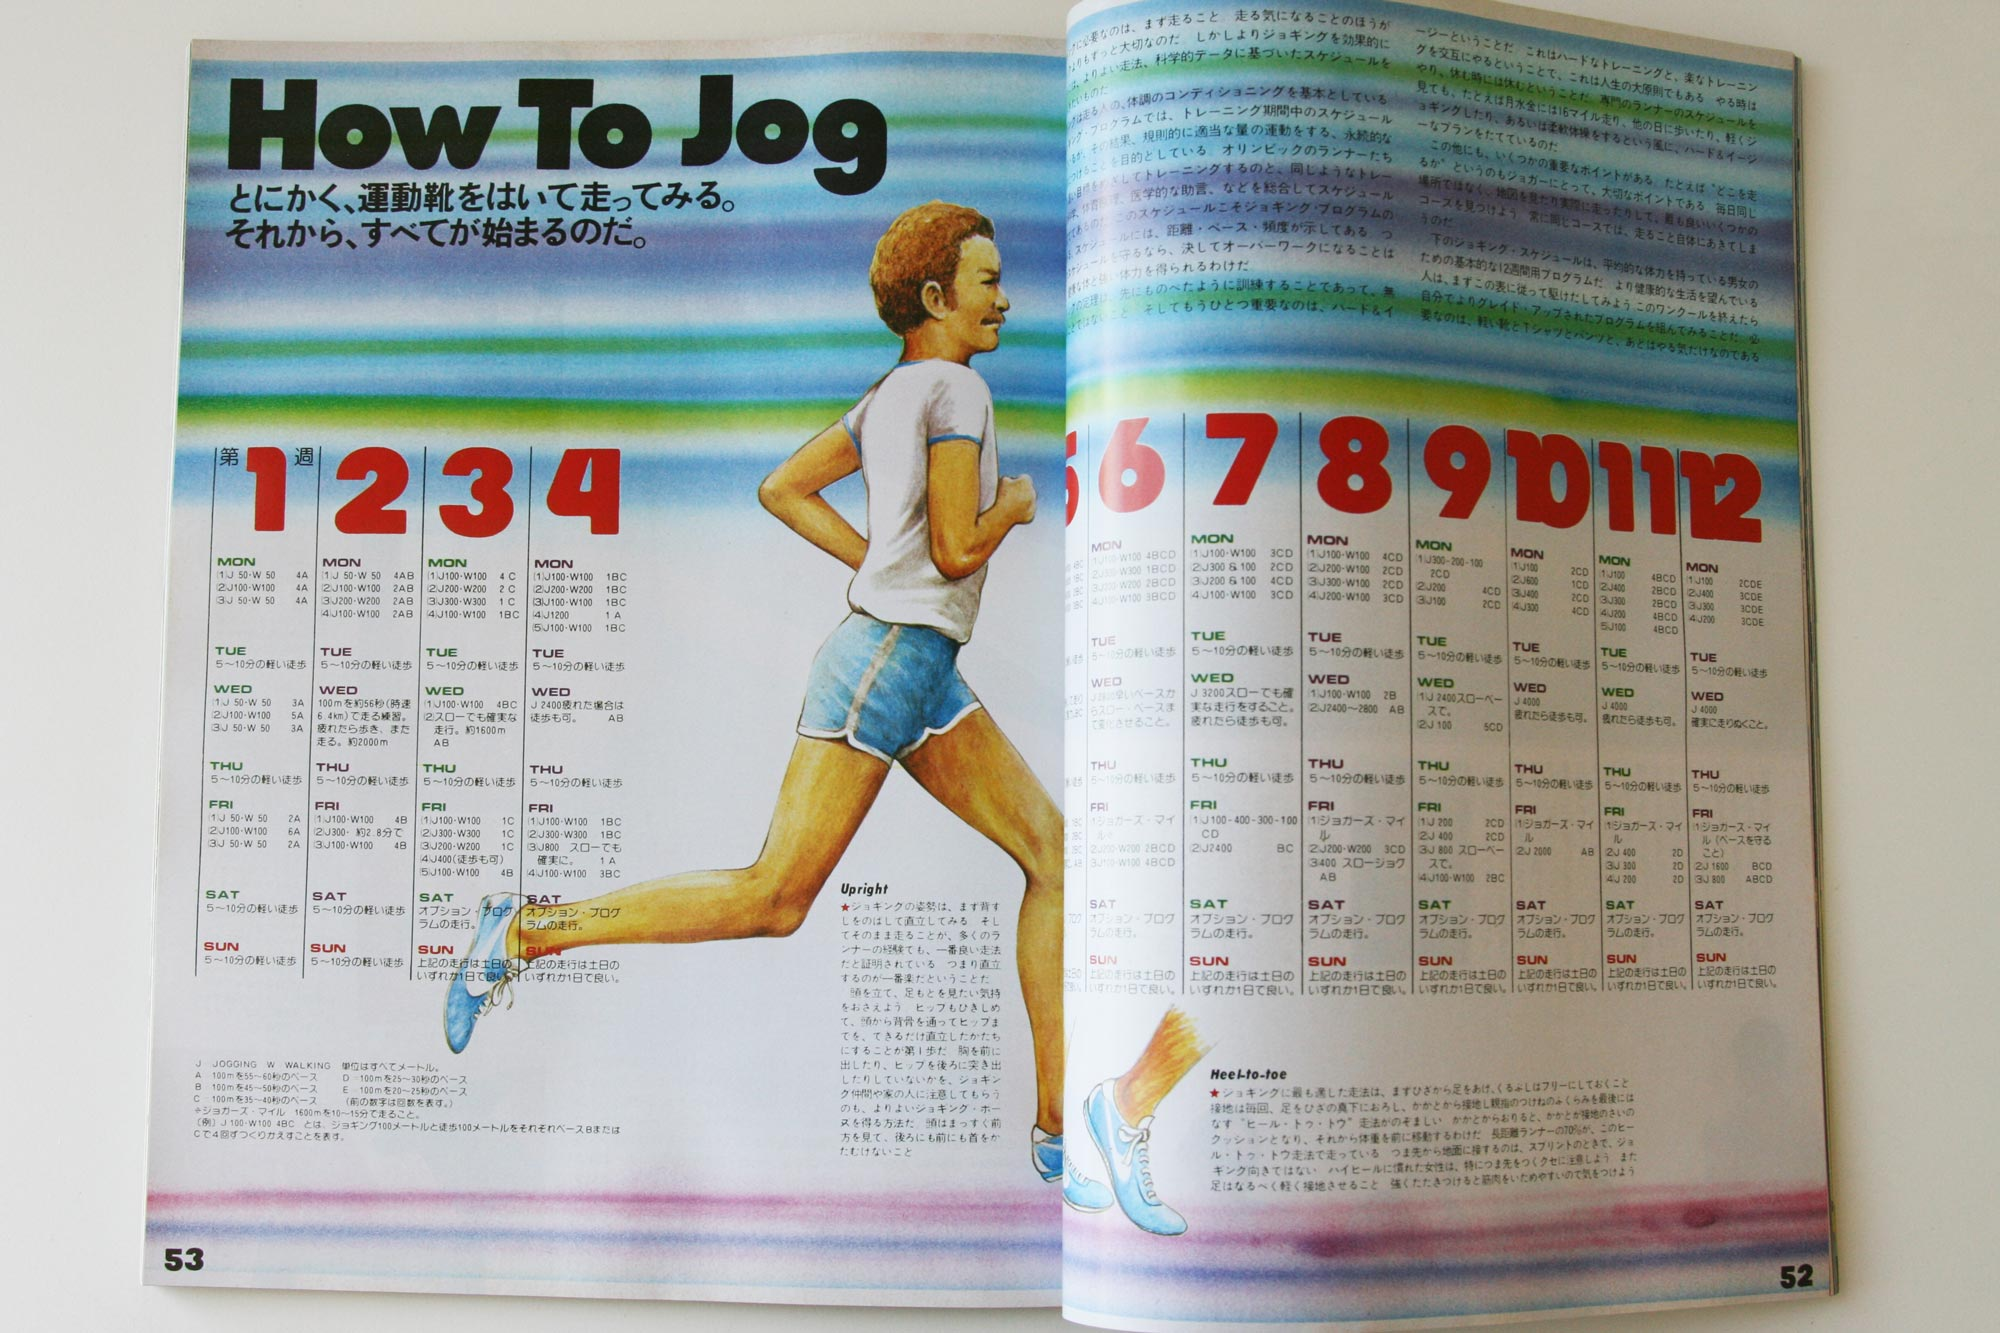 popeye-how-to-jog_4567